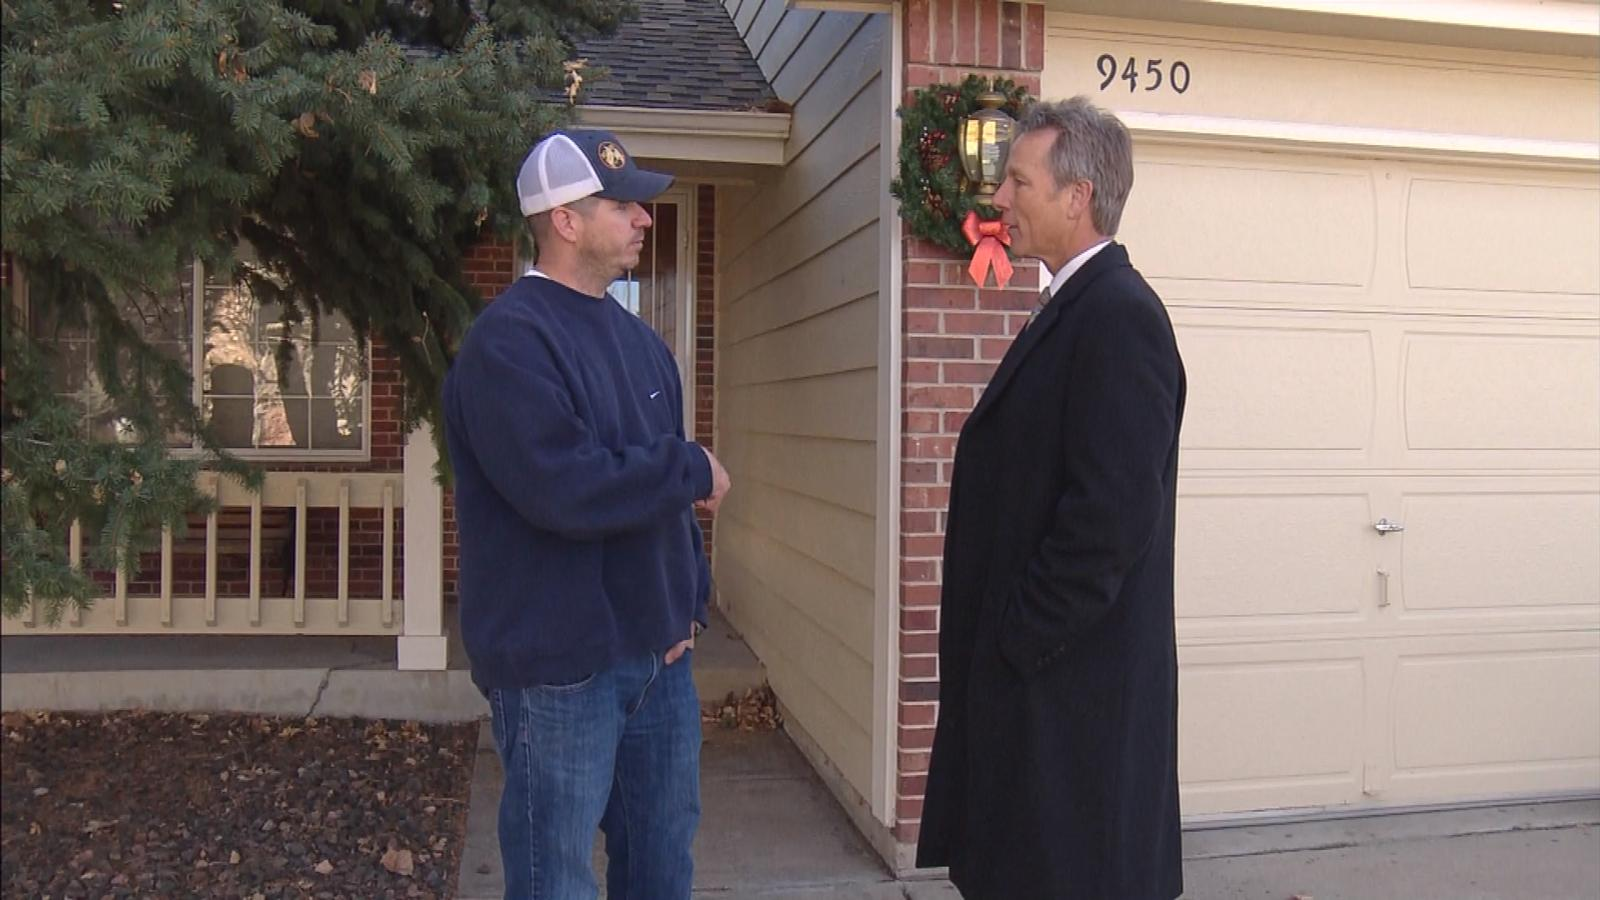 Neighbor Brian Deulley is interviewed by CBS4's Tom Mustin (credit: CBS)